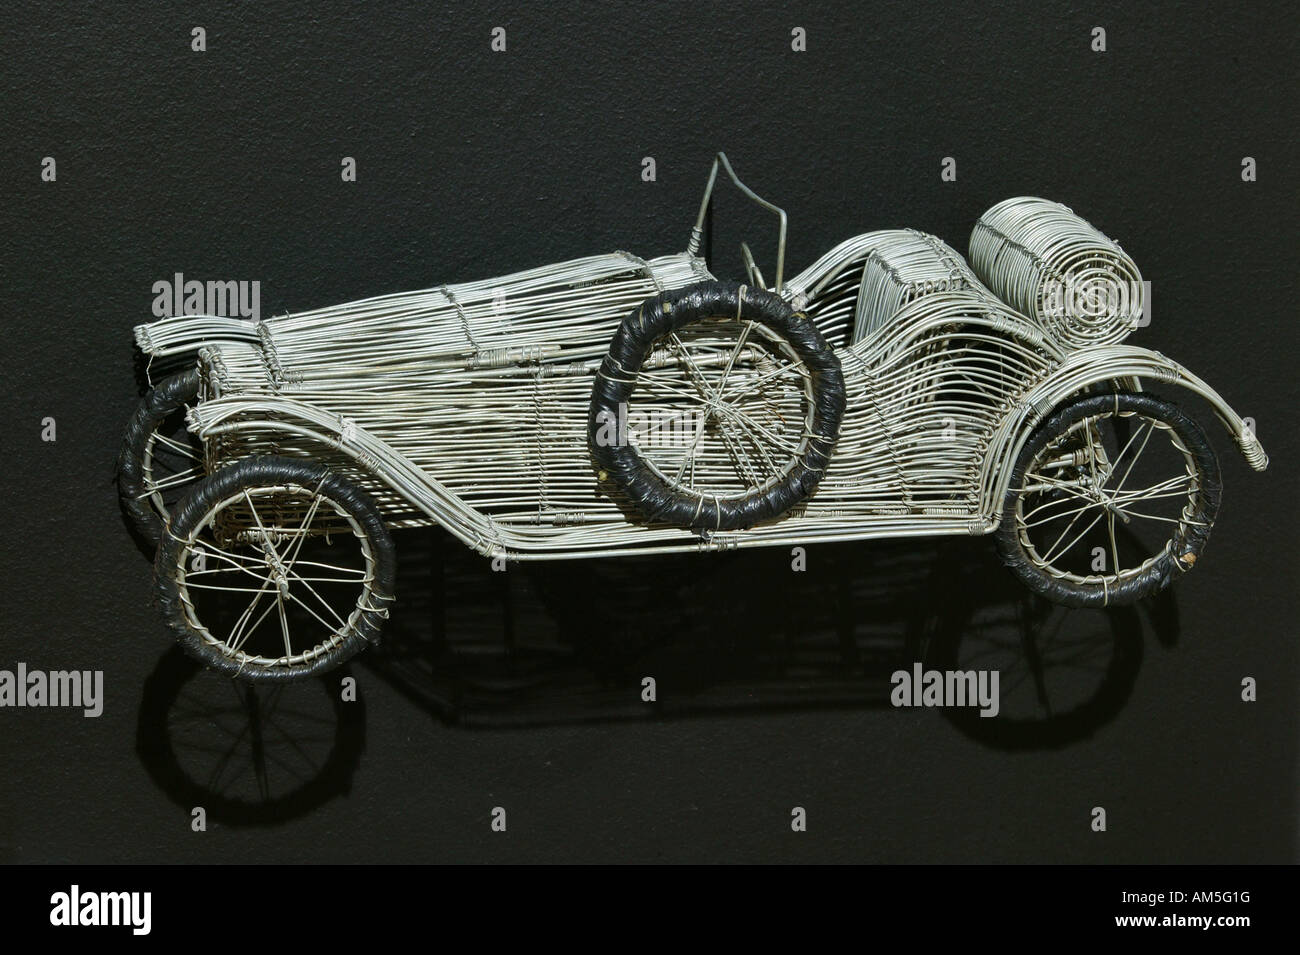 artsandcrafts car made of silver wire nationalculture